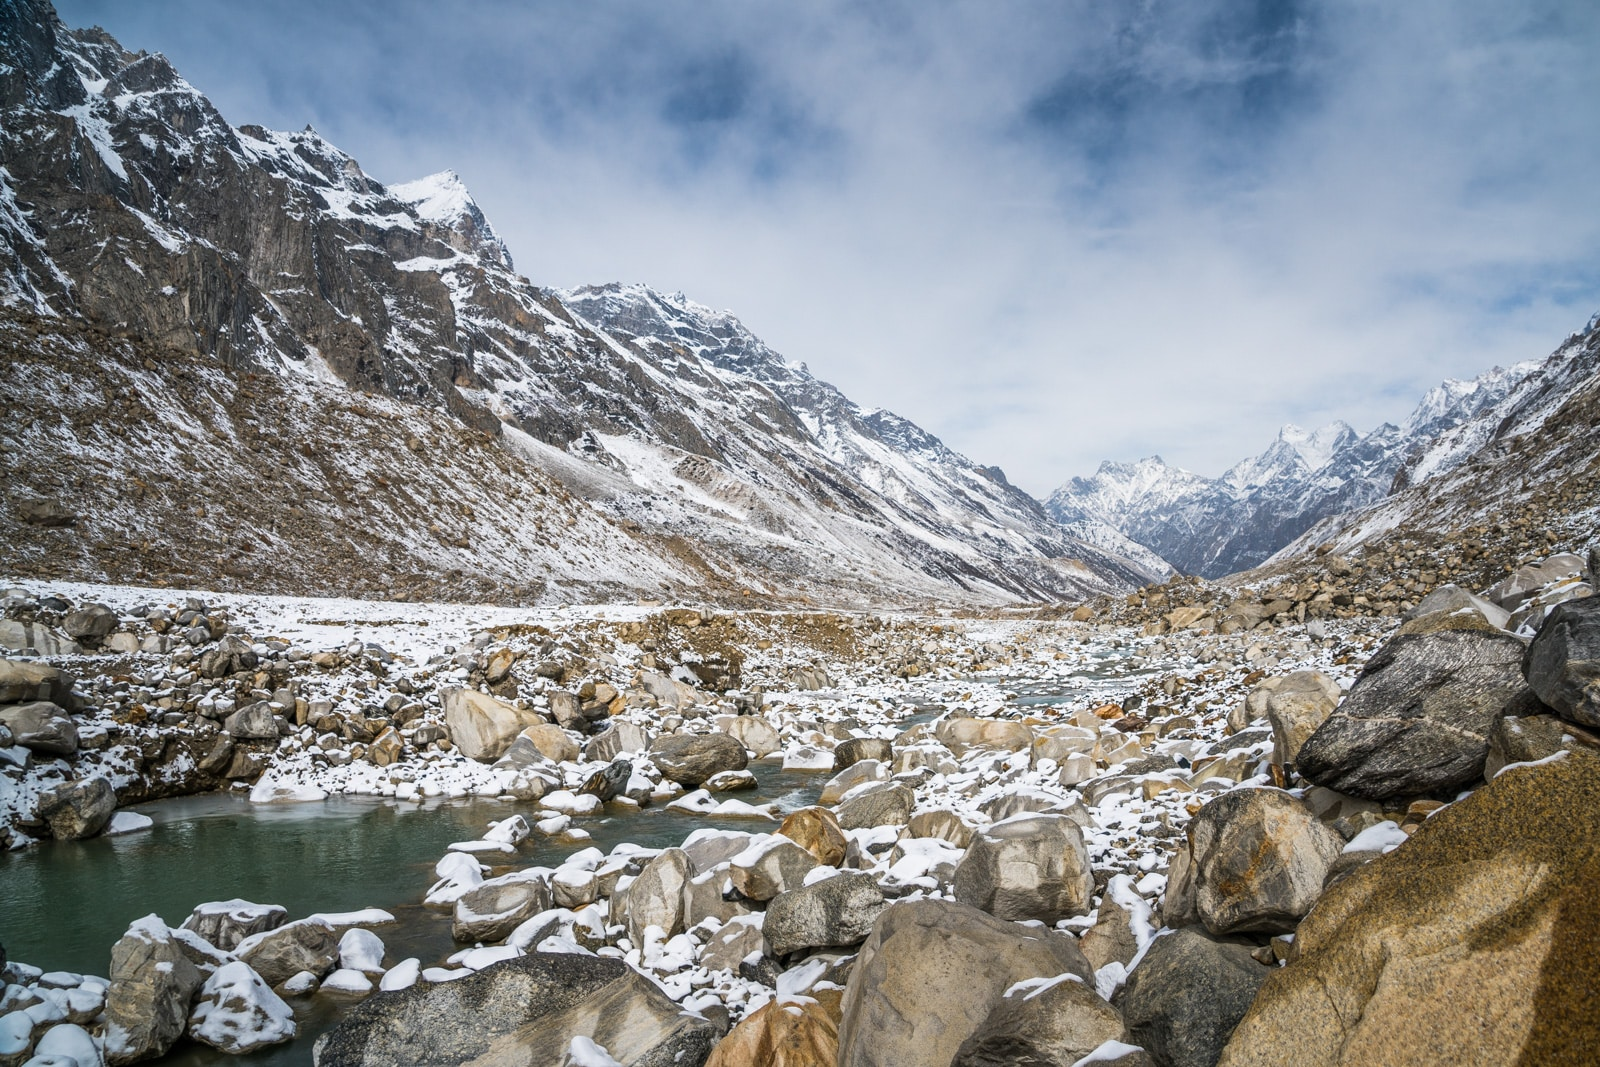 Gomukh glacier, start of the Ganges/Ganga river in Uttarakhand, India